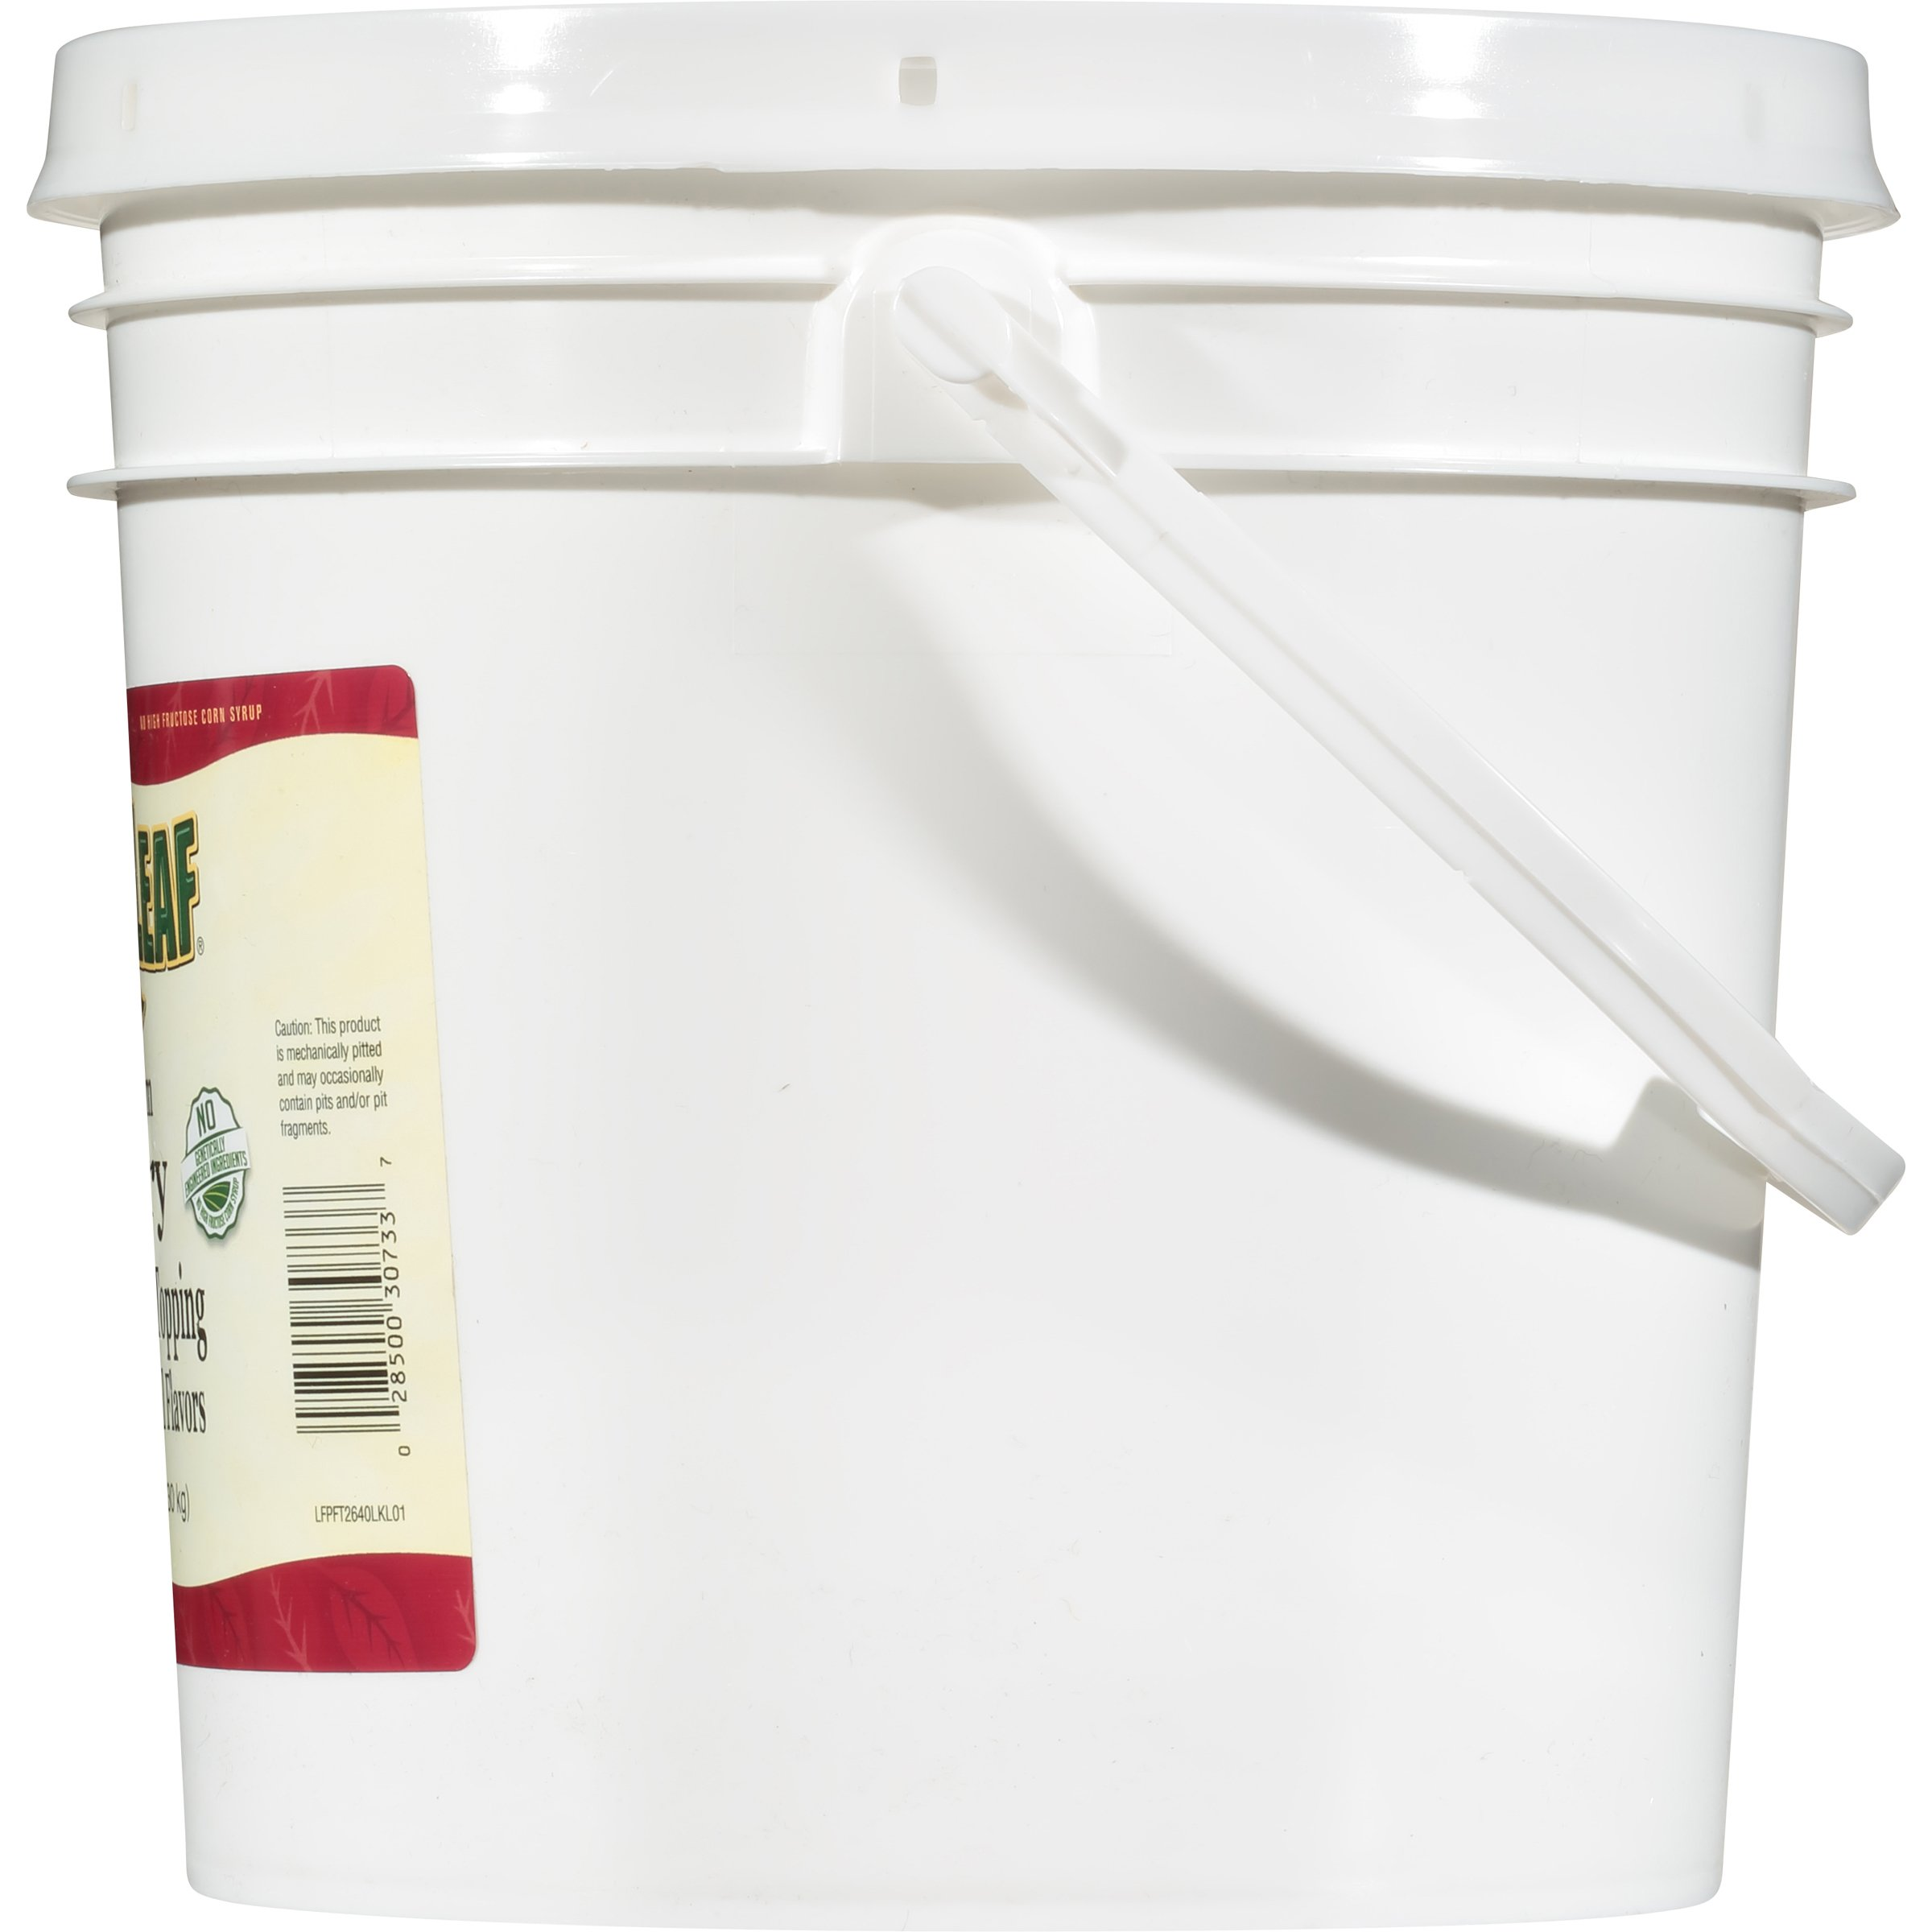 Lucky Leaf Premium Clean Label Cherry Fruit Filling or Topping Pail, Cherry, 9.5 Pound by Lucky Leaf (Image #4)